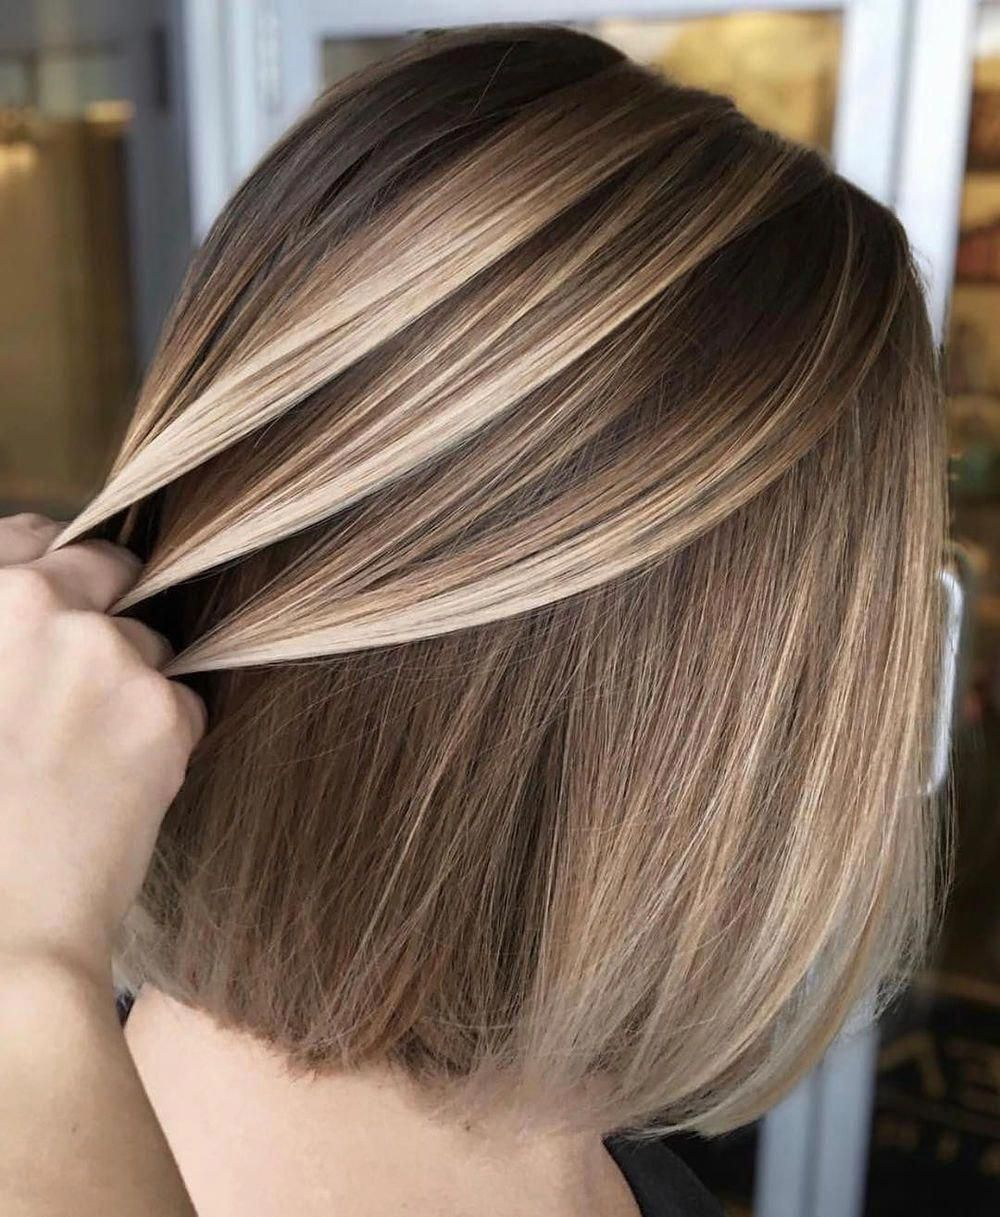 70 Flattering Balayage Hair Color Ideas For 2021 Balayage Hair Short Hair Balayage Brunette Hair Color